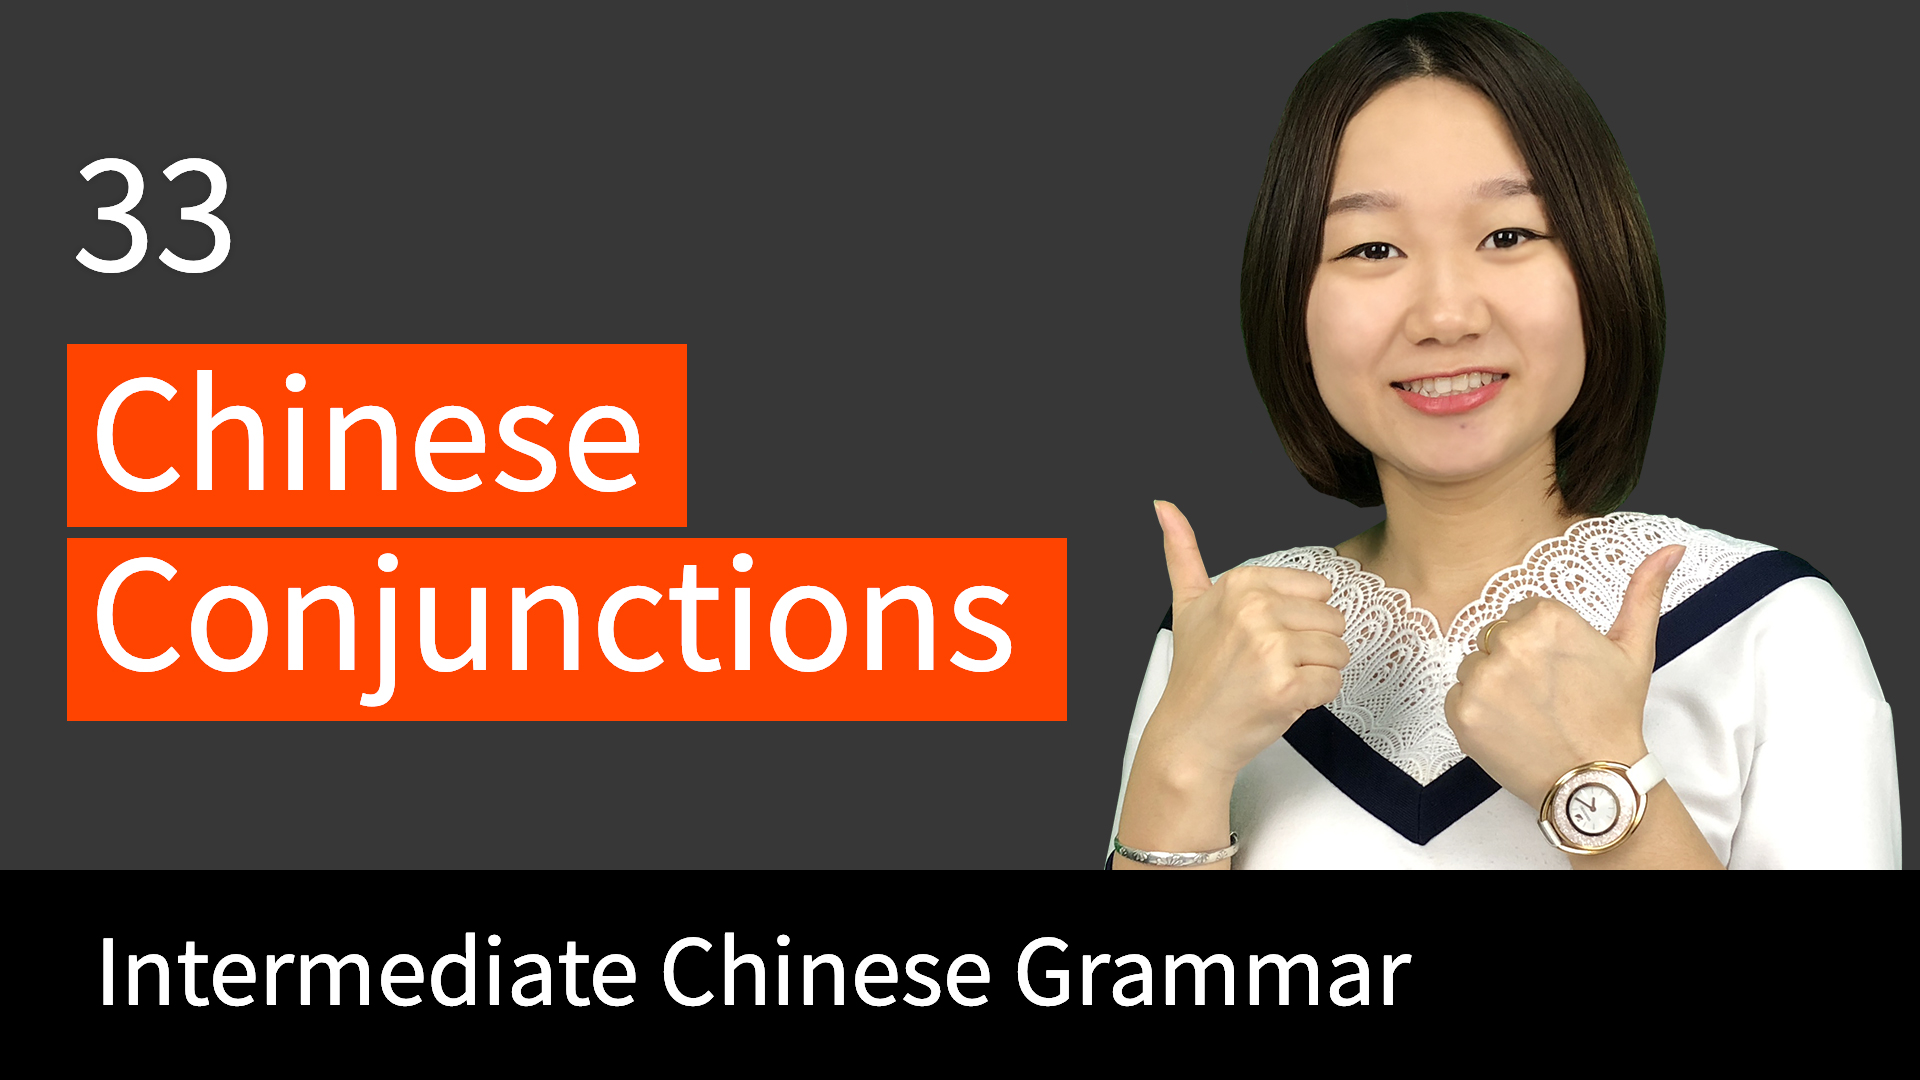 33 Chinese Conjunctions for Intermediate Chinese Learners